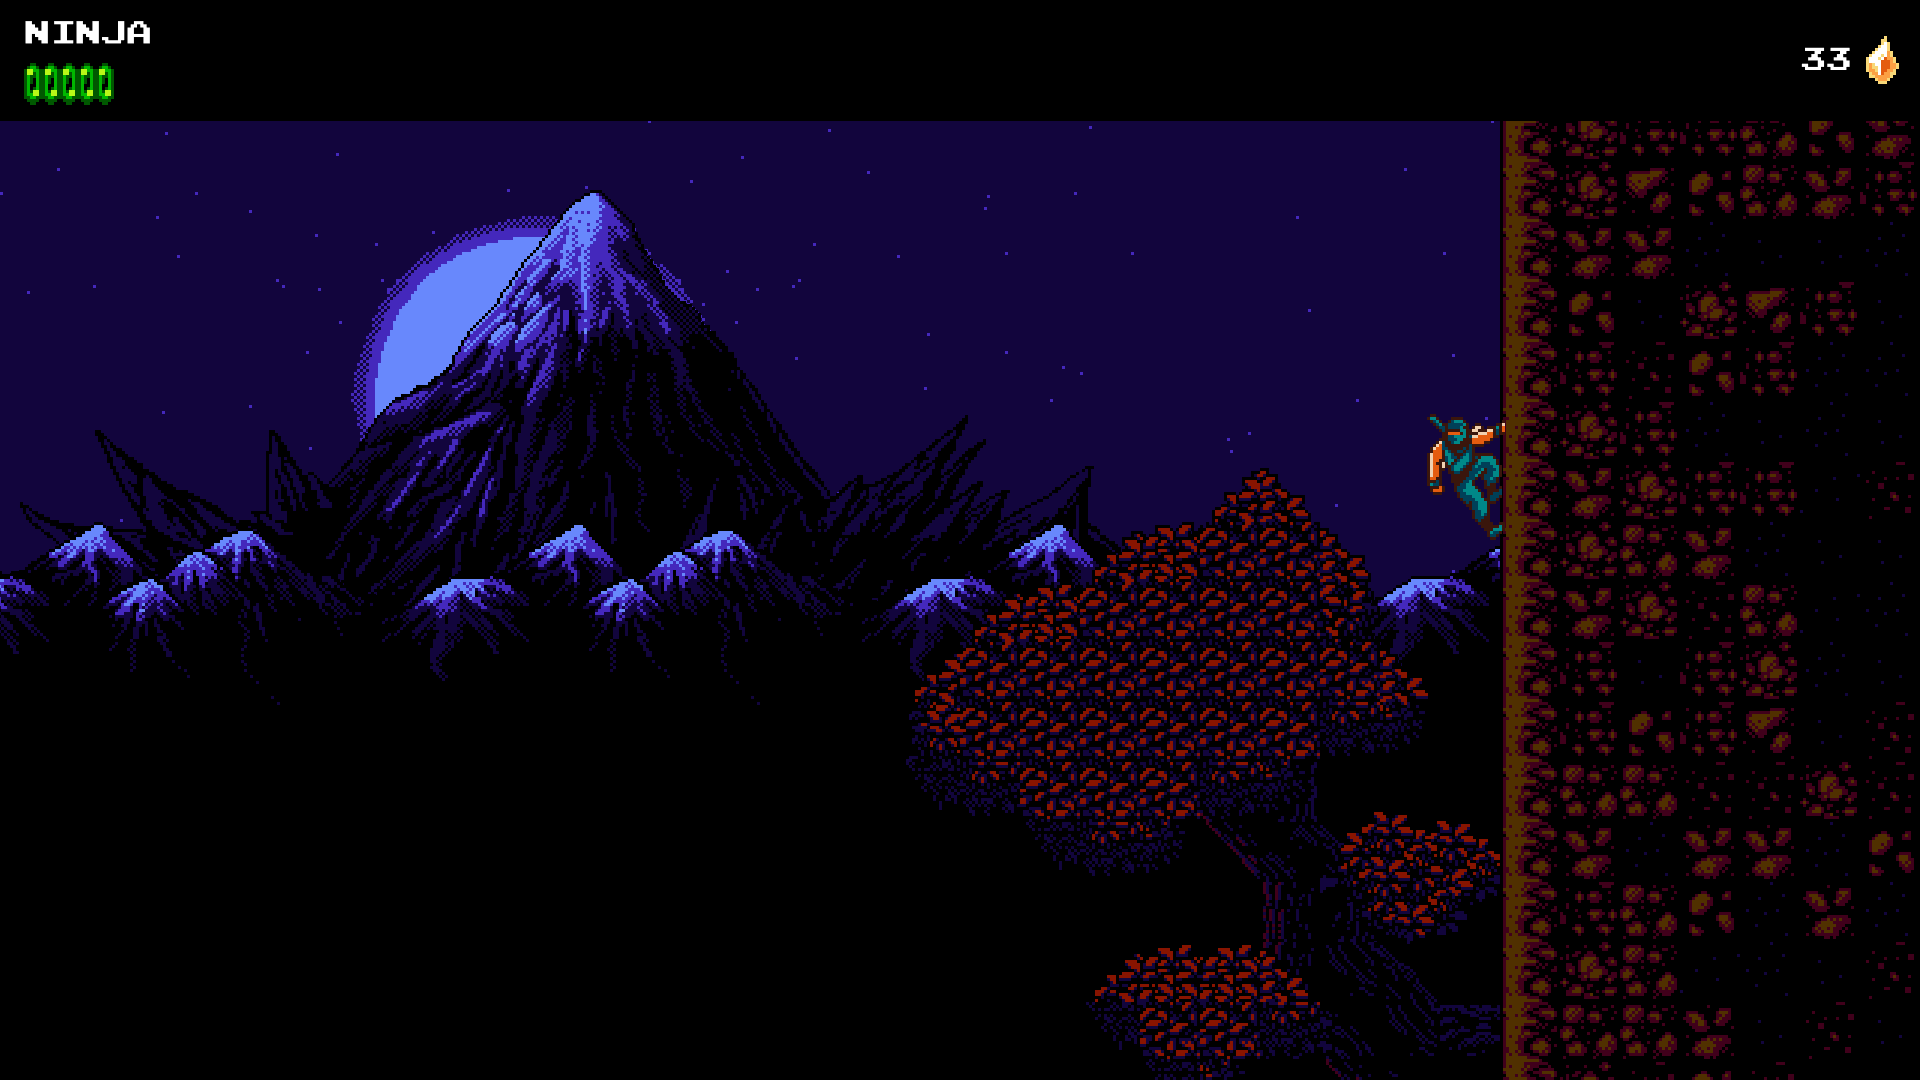 The Ninja climbing up a cliff wall in front of the moon and mountains.